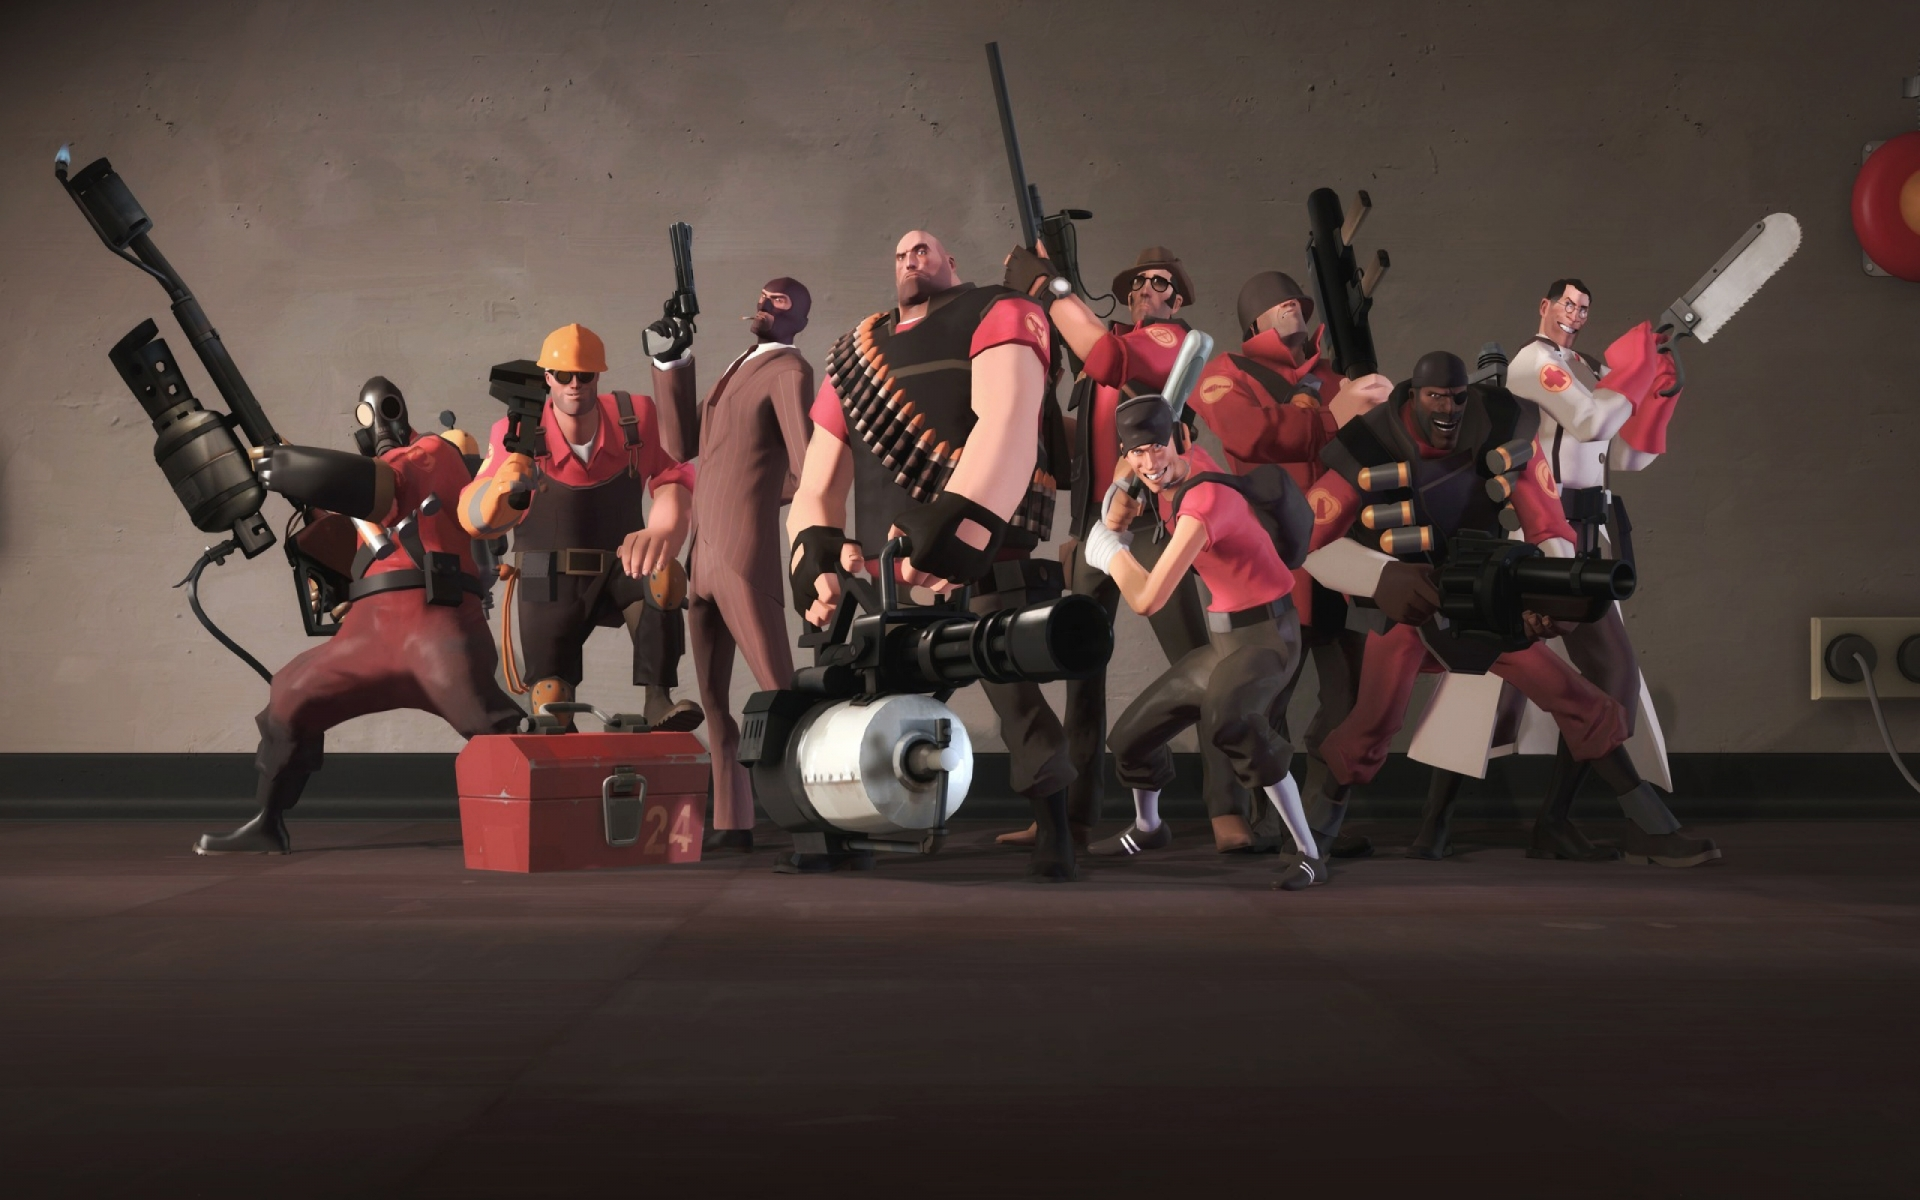 Арт к игре Team Fortress 2